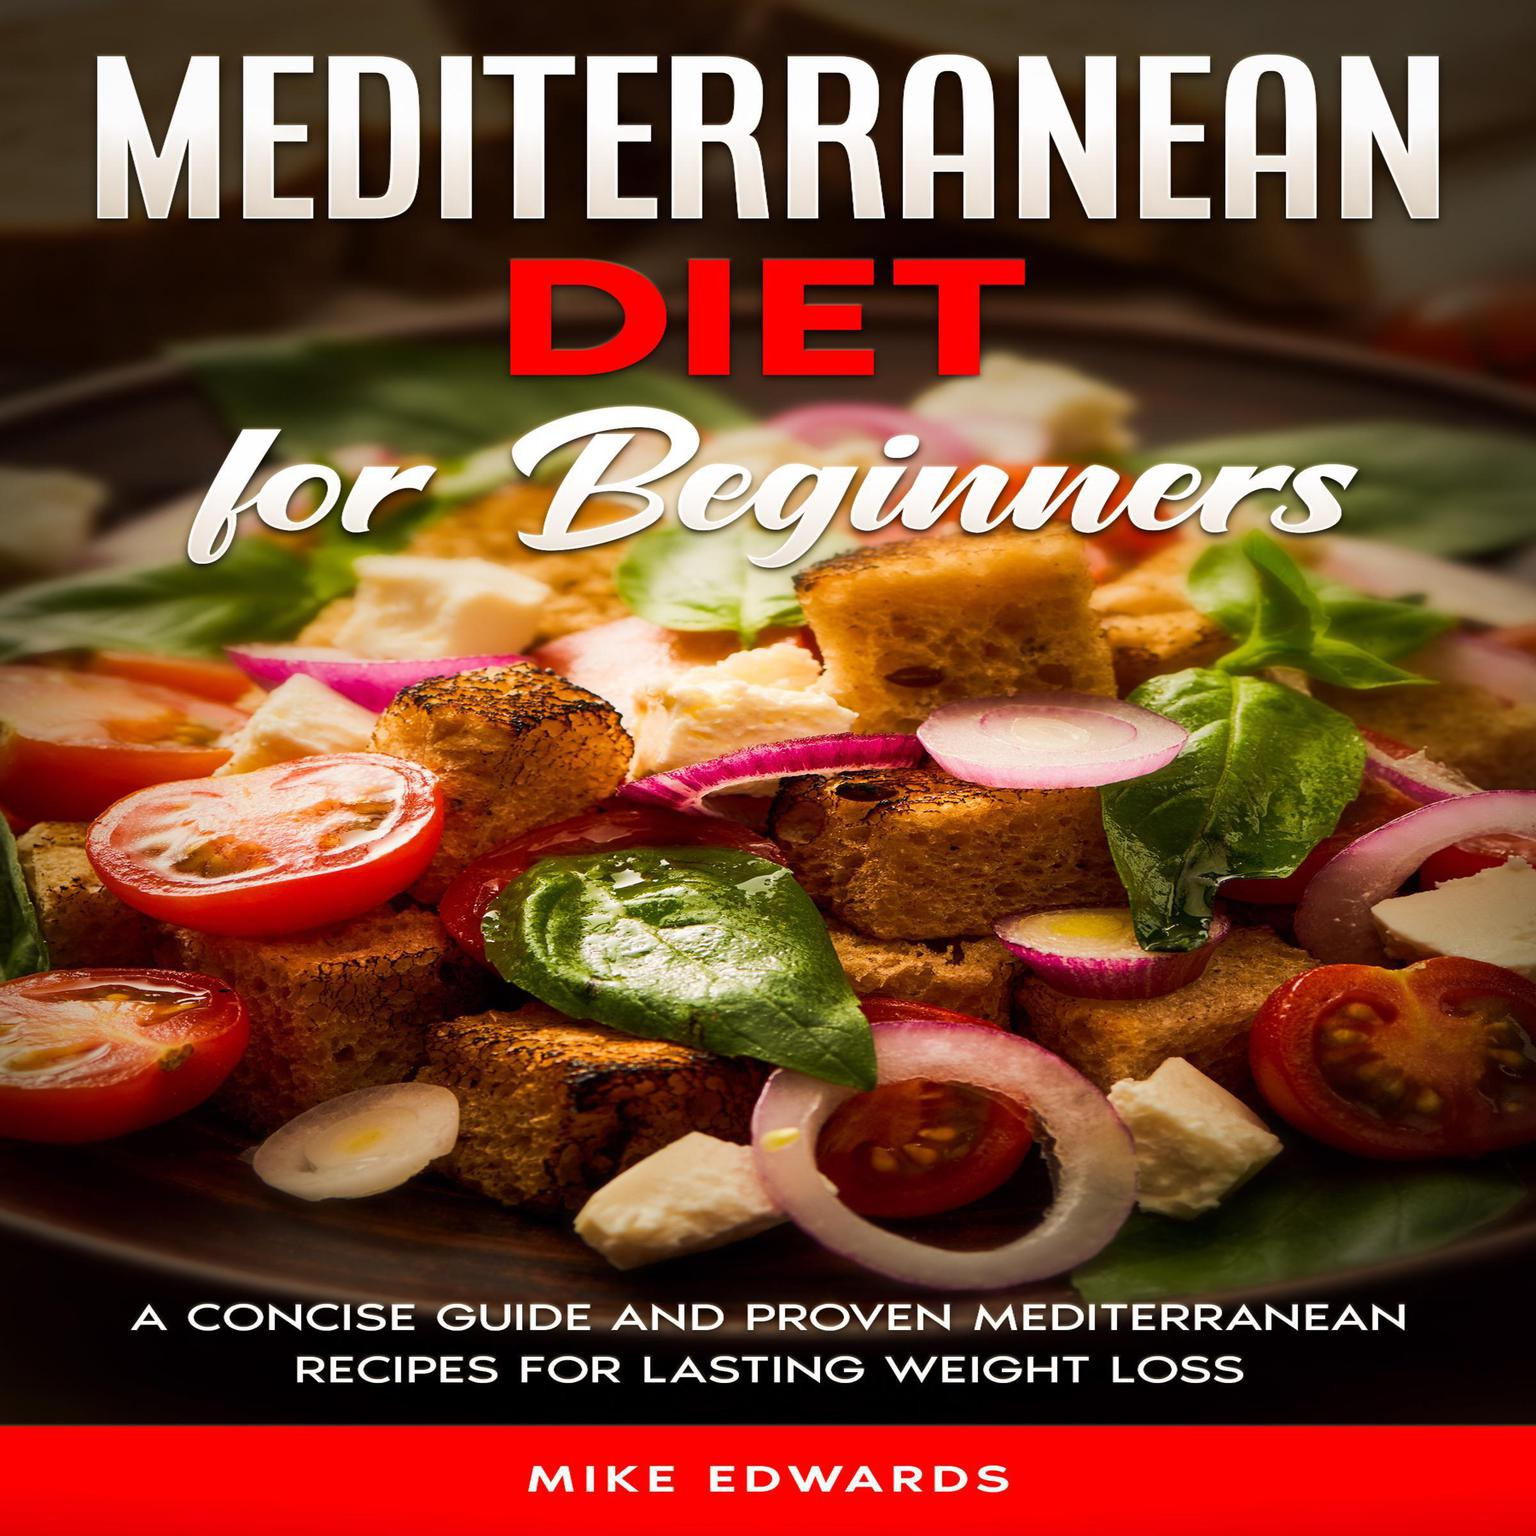 Mediterranean Diet for Beginners: A Concise Guide and Proven Mediterranean Recipes for Lasting Weight Loss Audiobook, by Mike Edwards